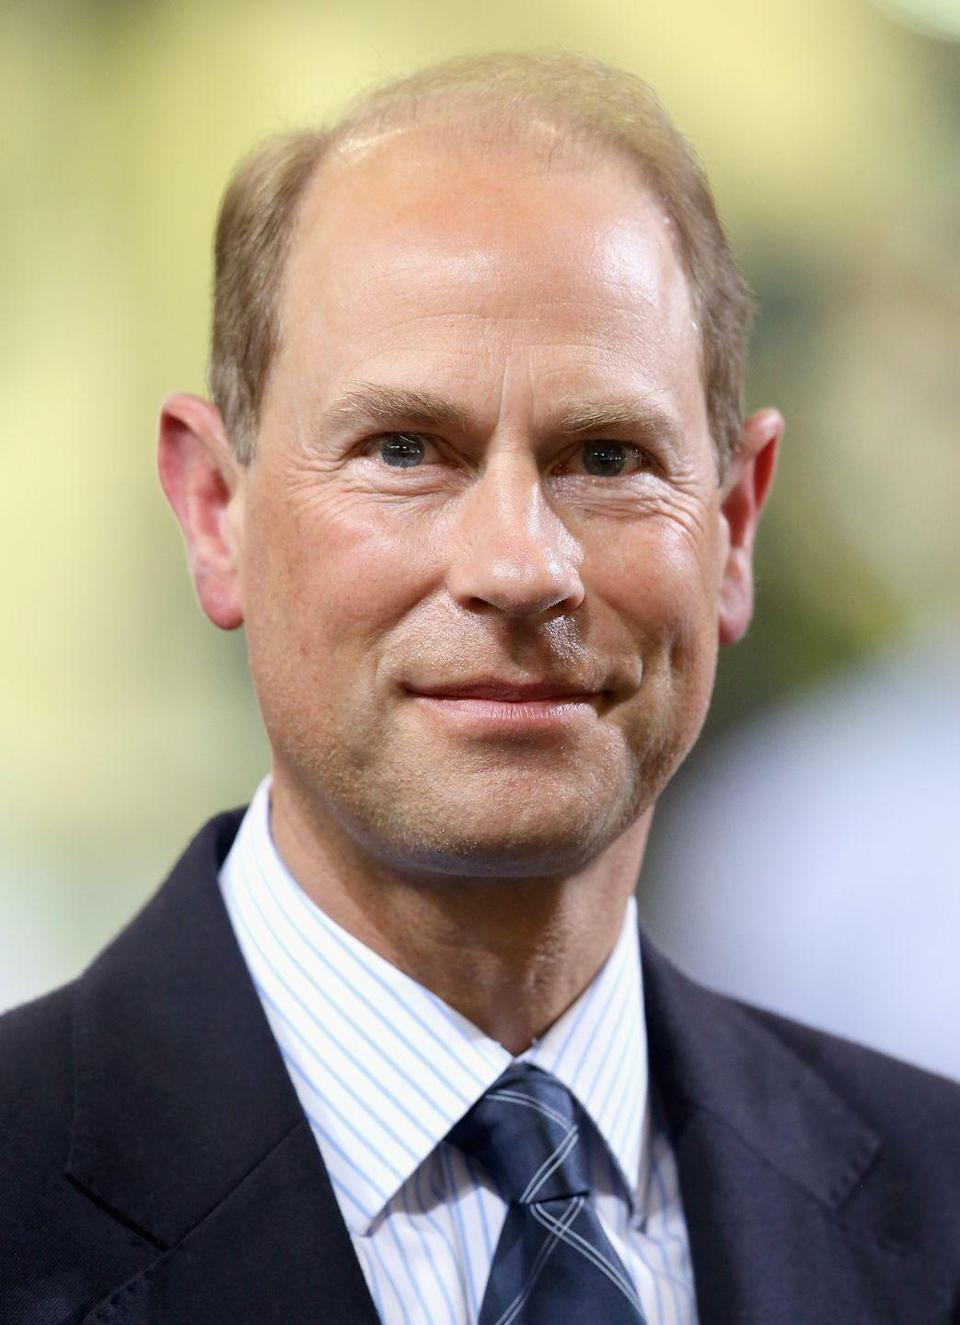 <p>As the youngest son to Queen Elizabeth and Prince Philip, the Earl of Wessex comes in at 13th in line to the throne.</p>